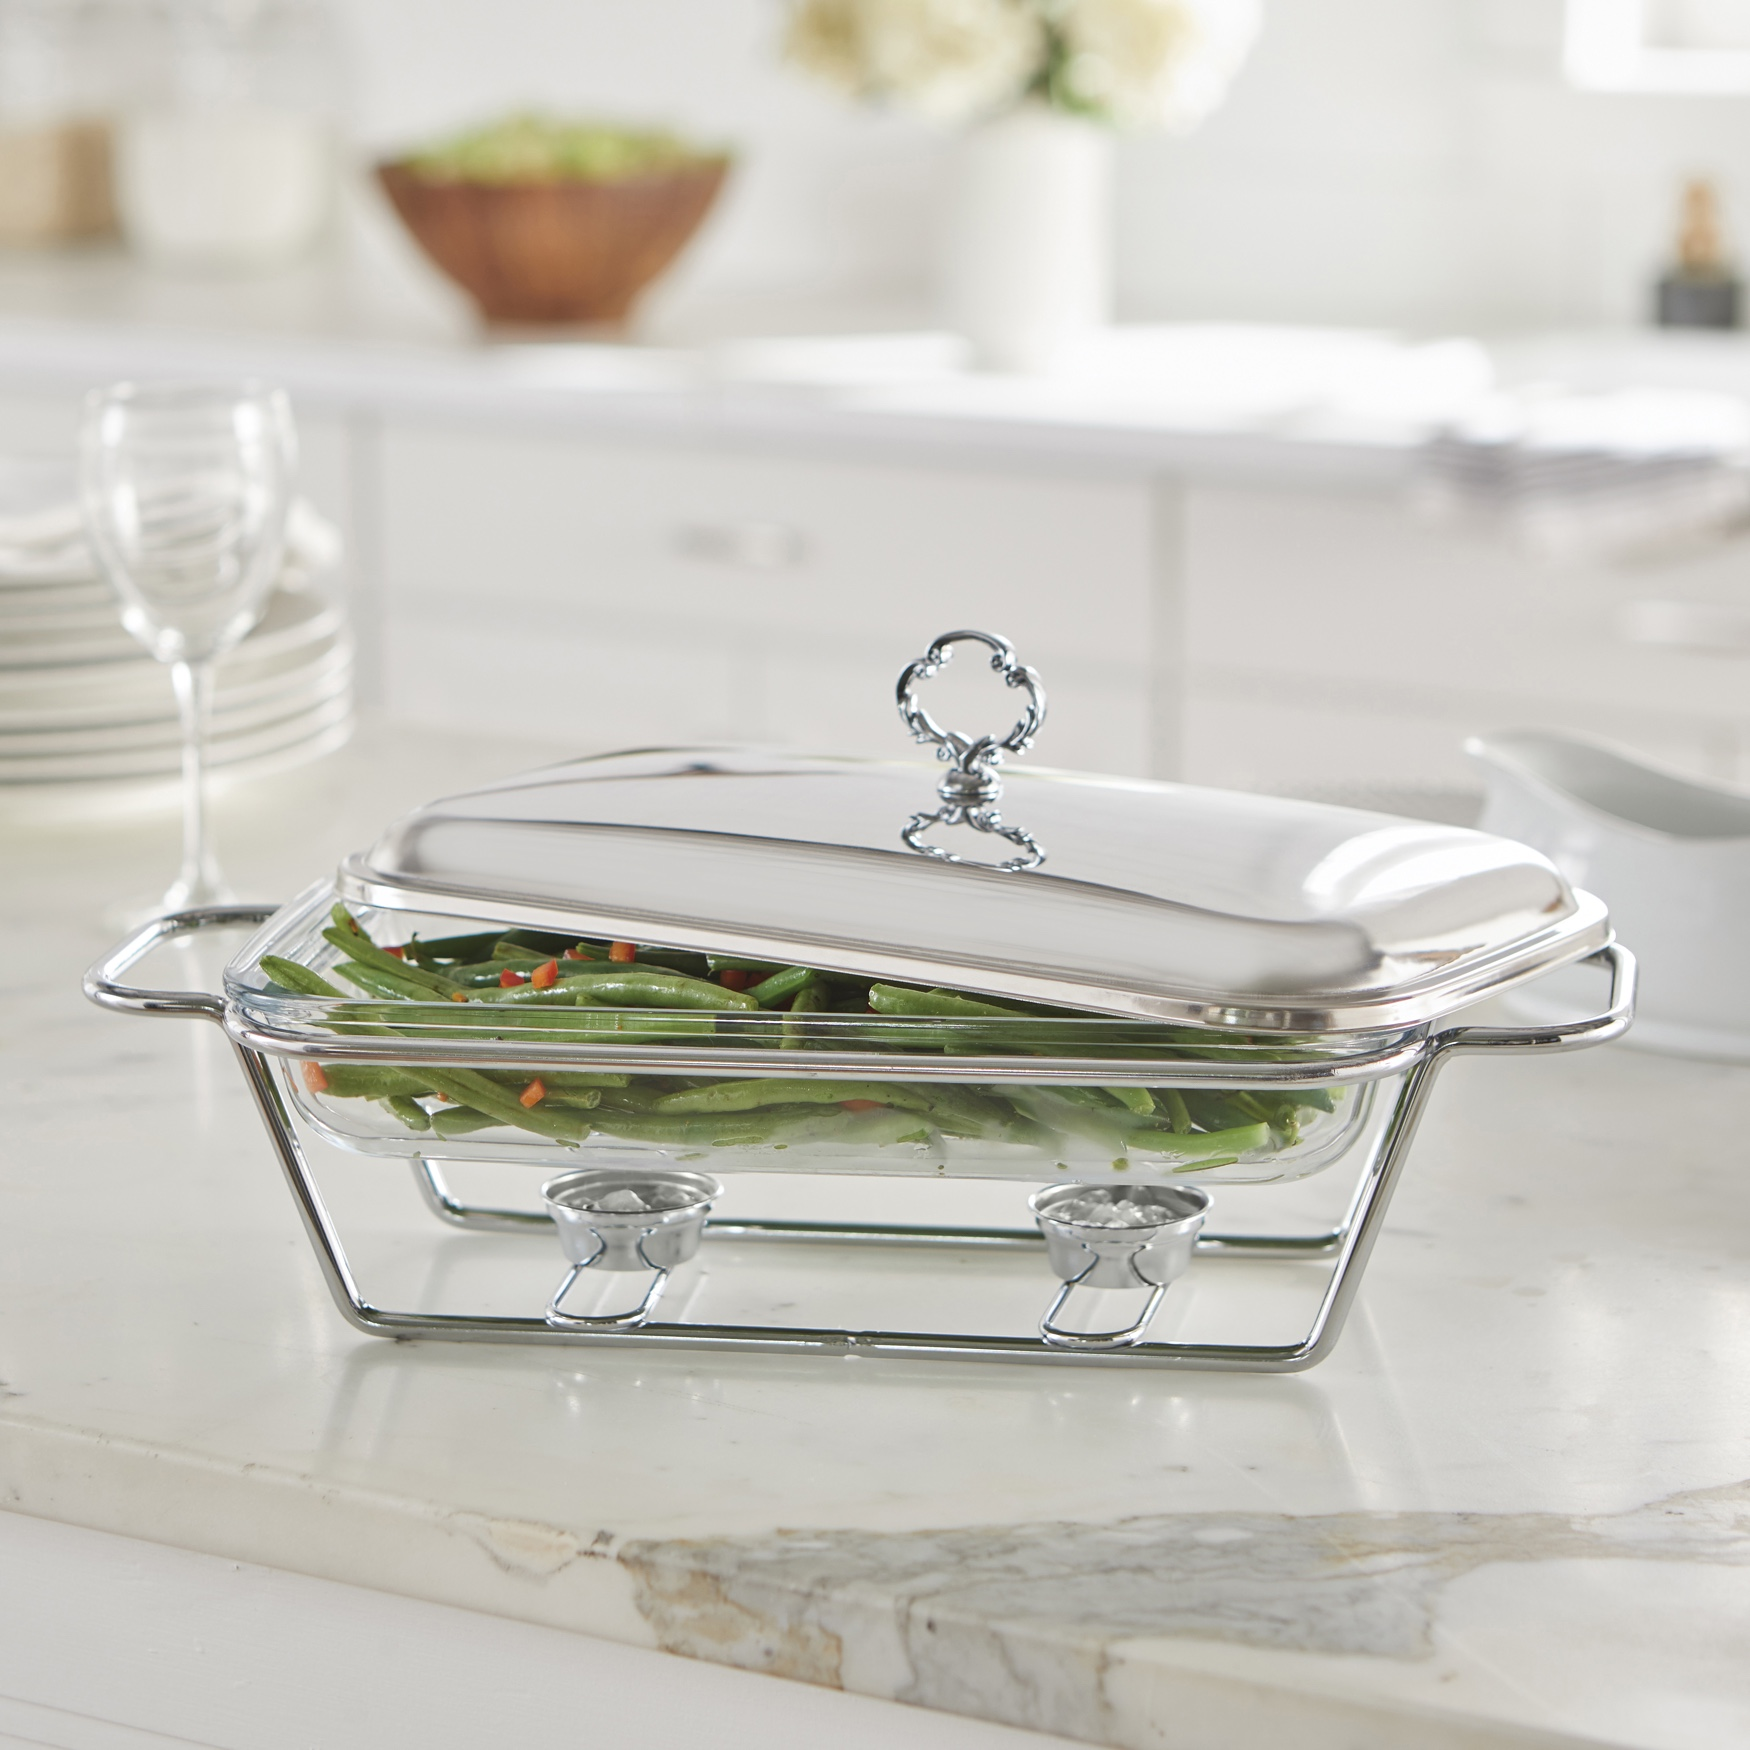 2.3-Qt. Rectangular Glass Chafing Dish, STAINLESS